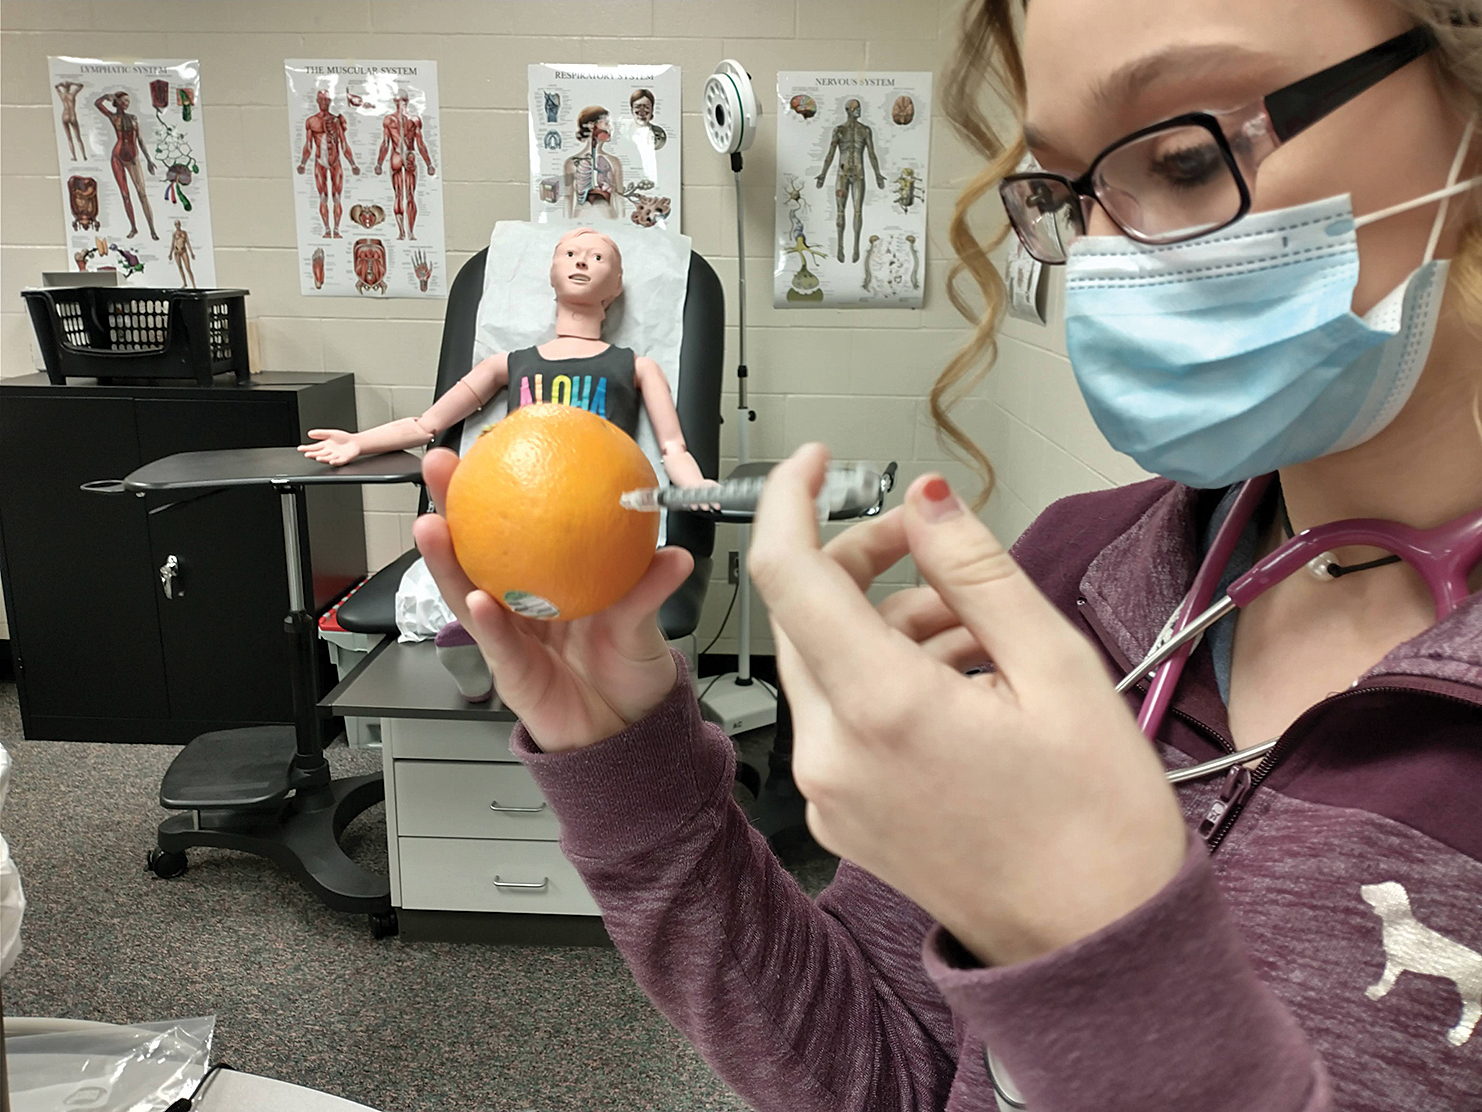 Medical assistant pathway gains strength